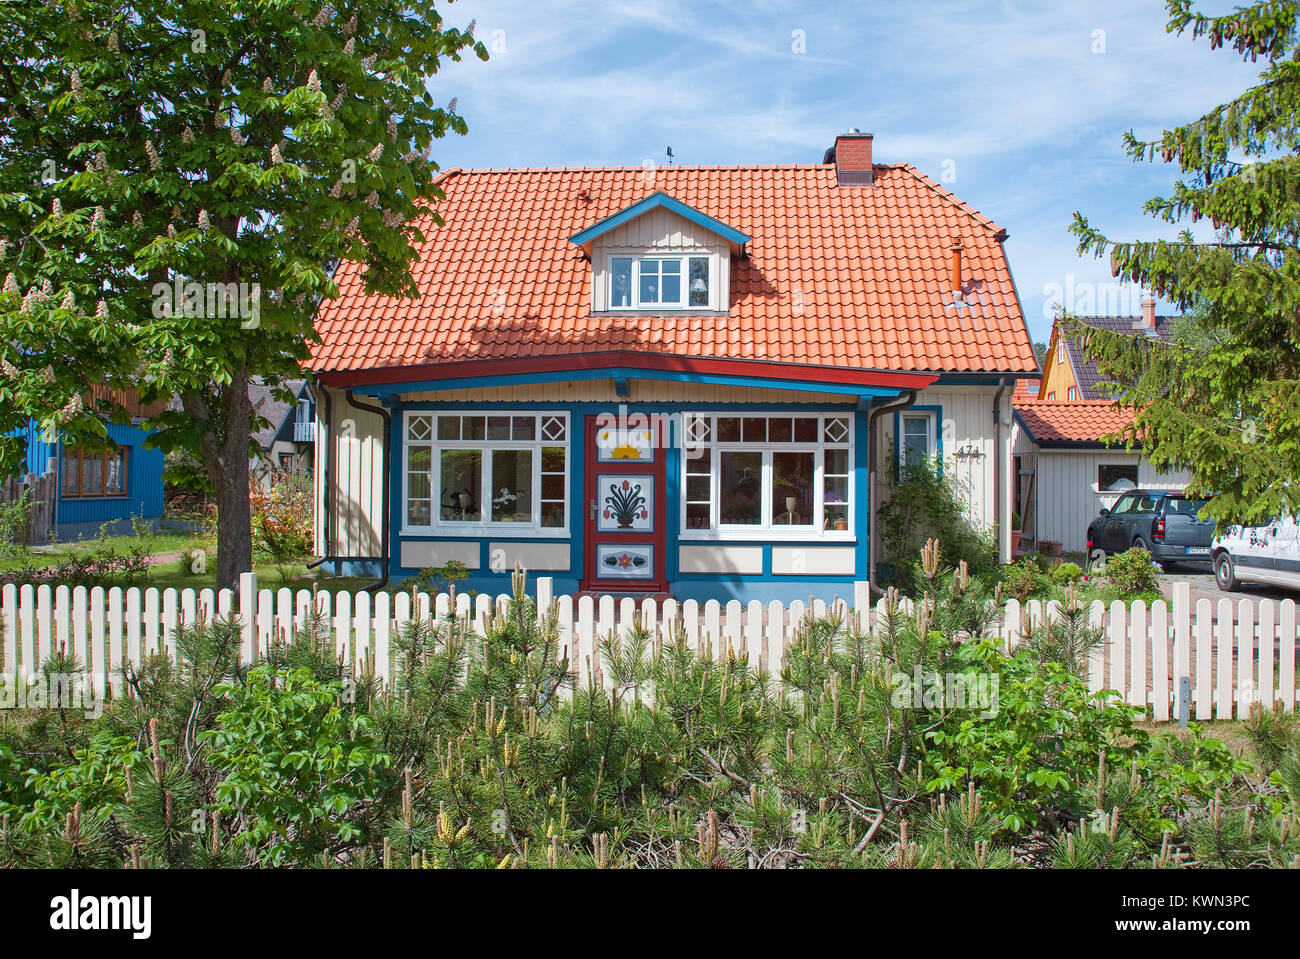 Colourful wooden residential house at Prerow, Fishland, Mecklenburg-Western Pomerania, Baltic sea, Germany, Europe - Stock Image